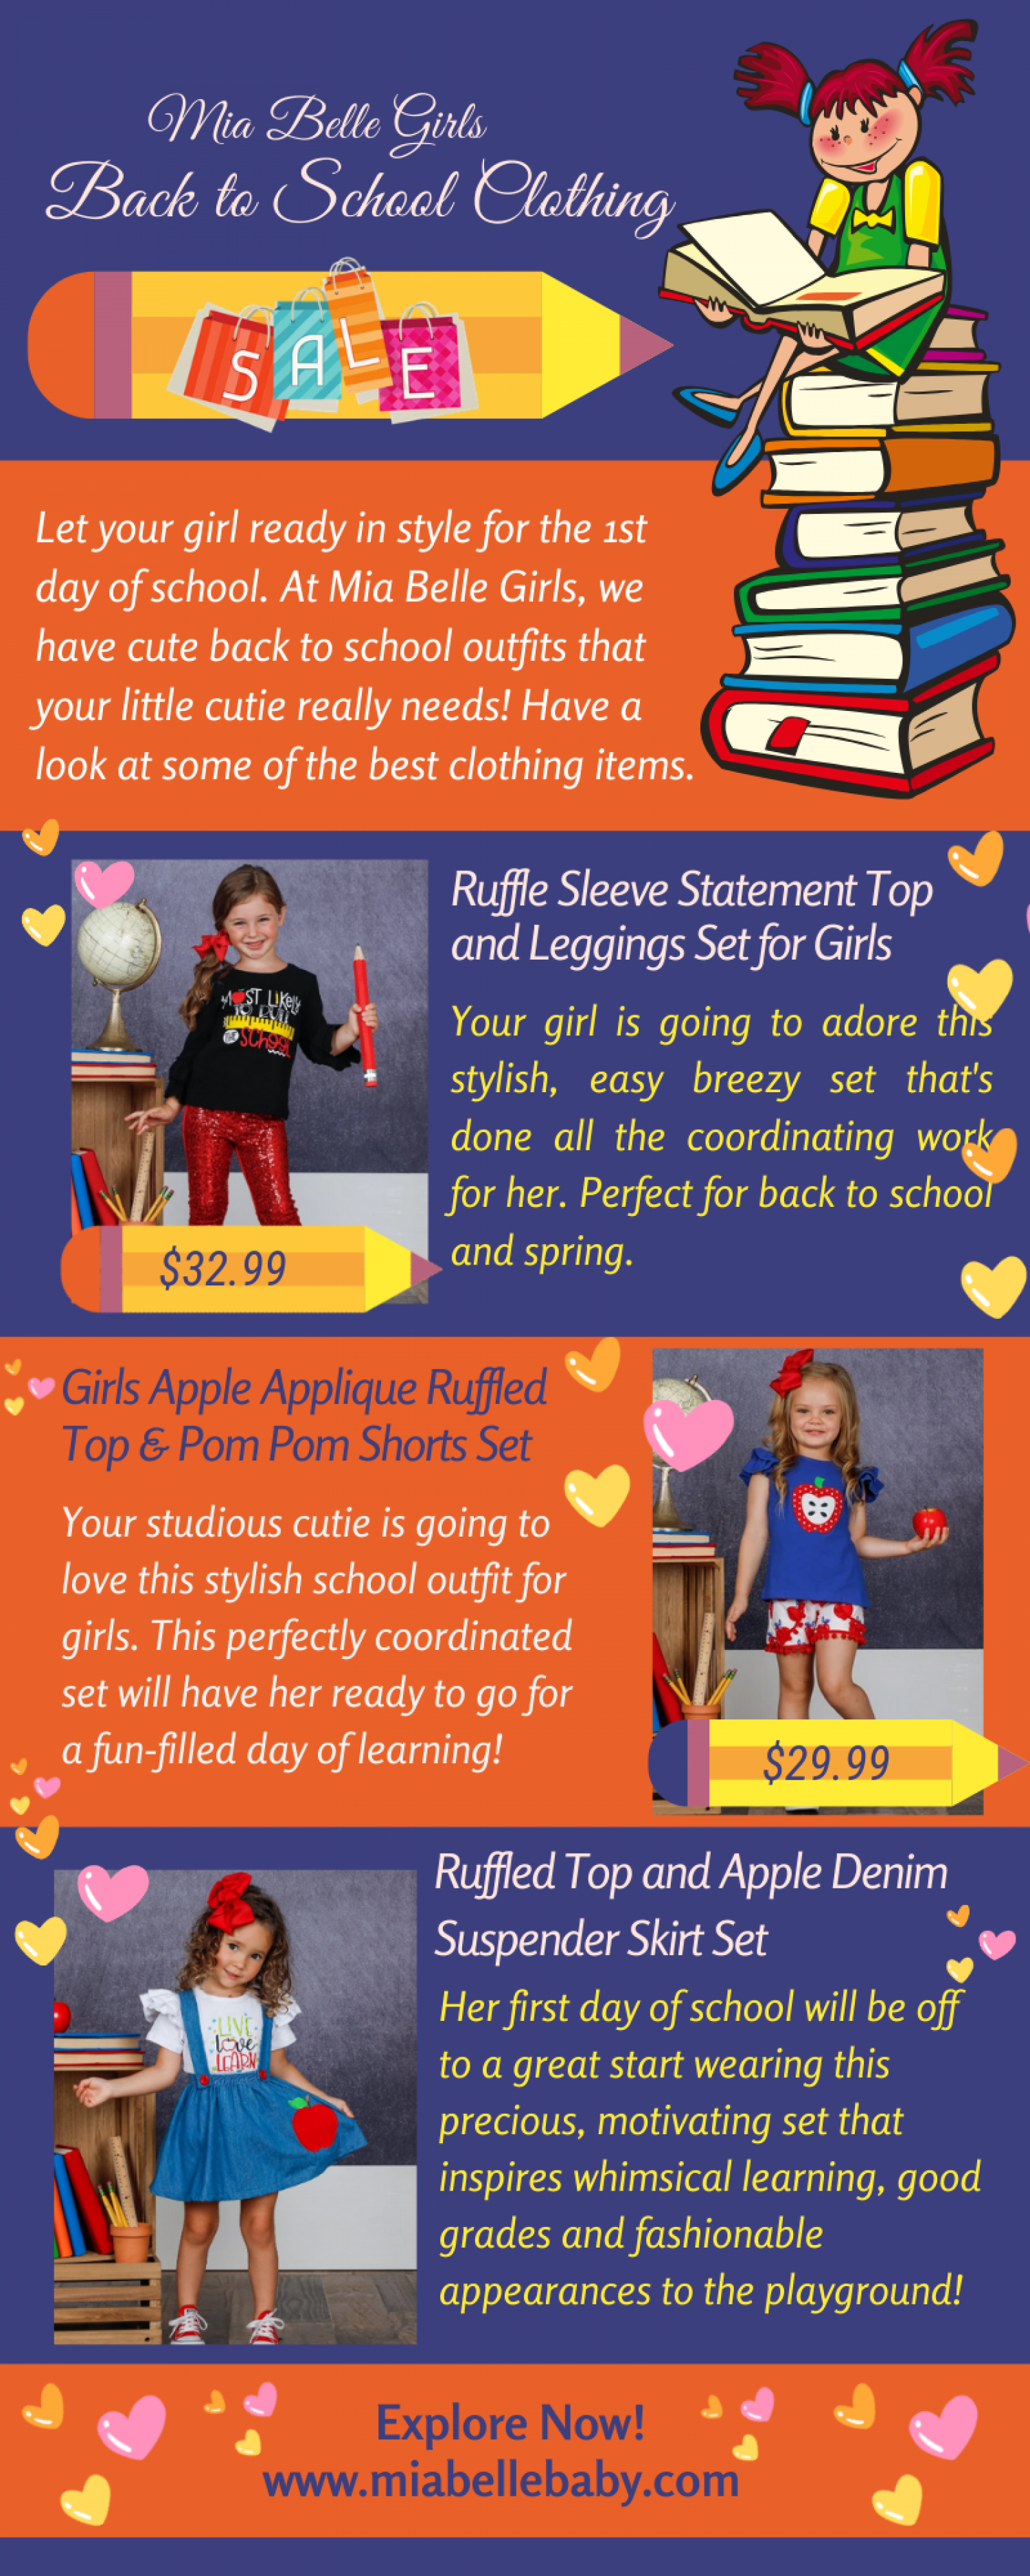 Mia Belle Girls School Outfits Online Infographic